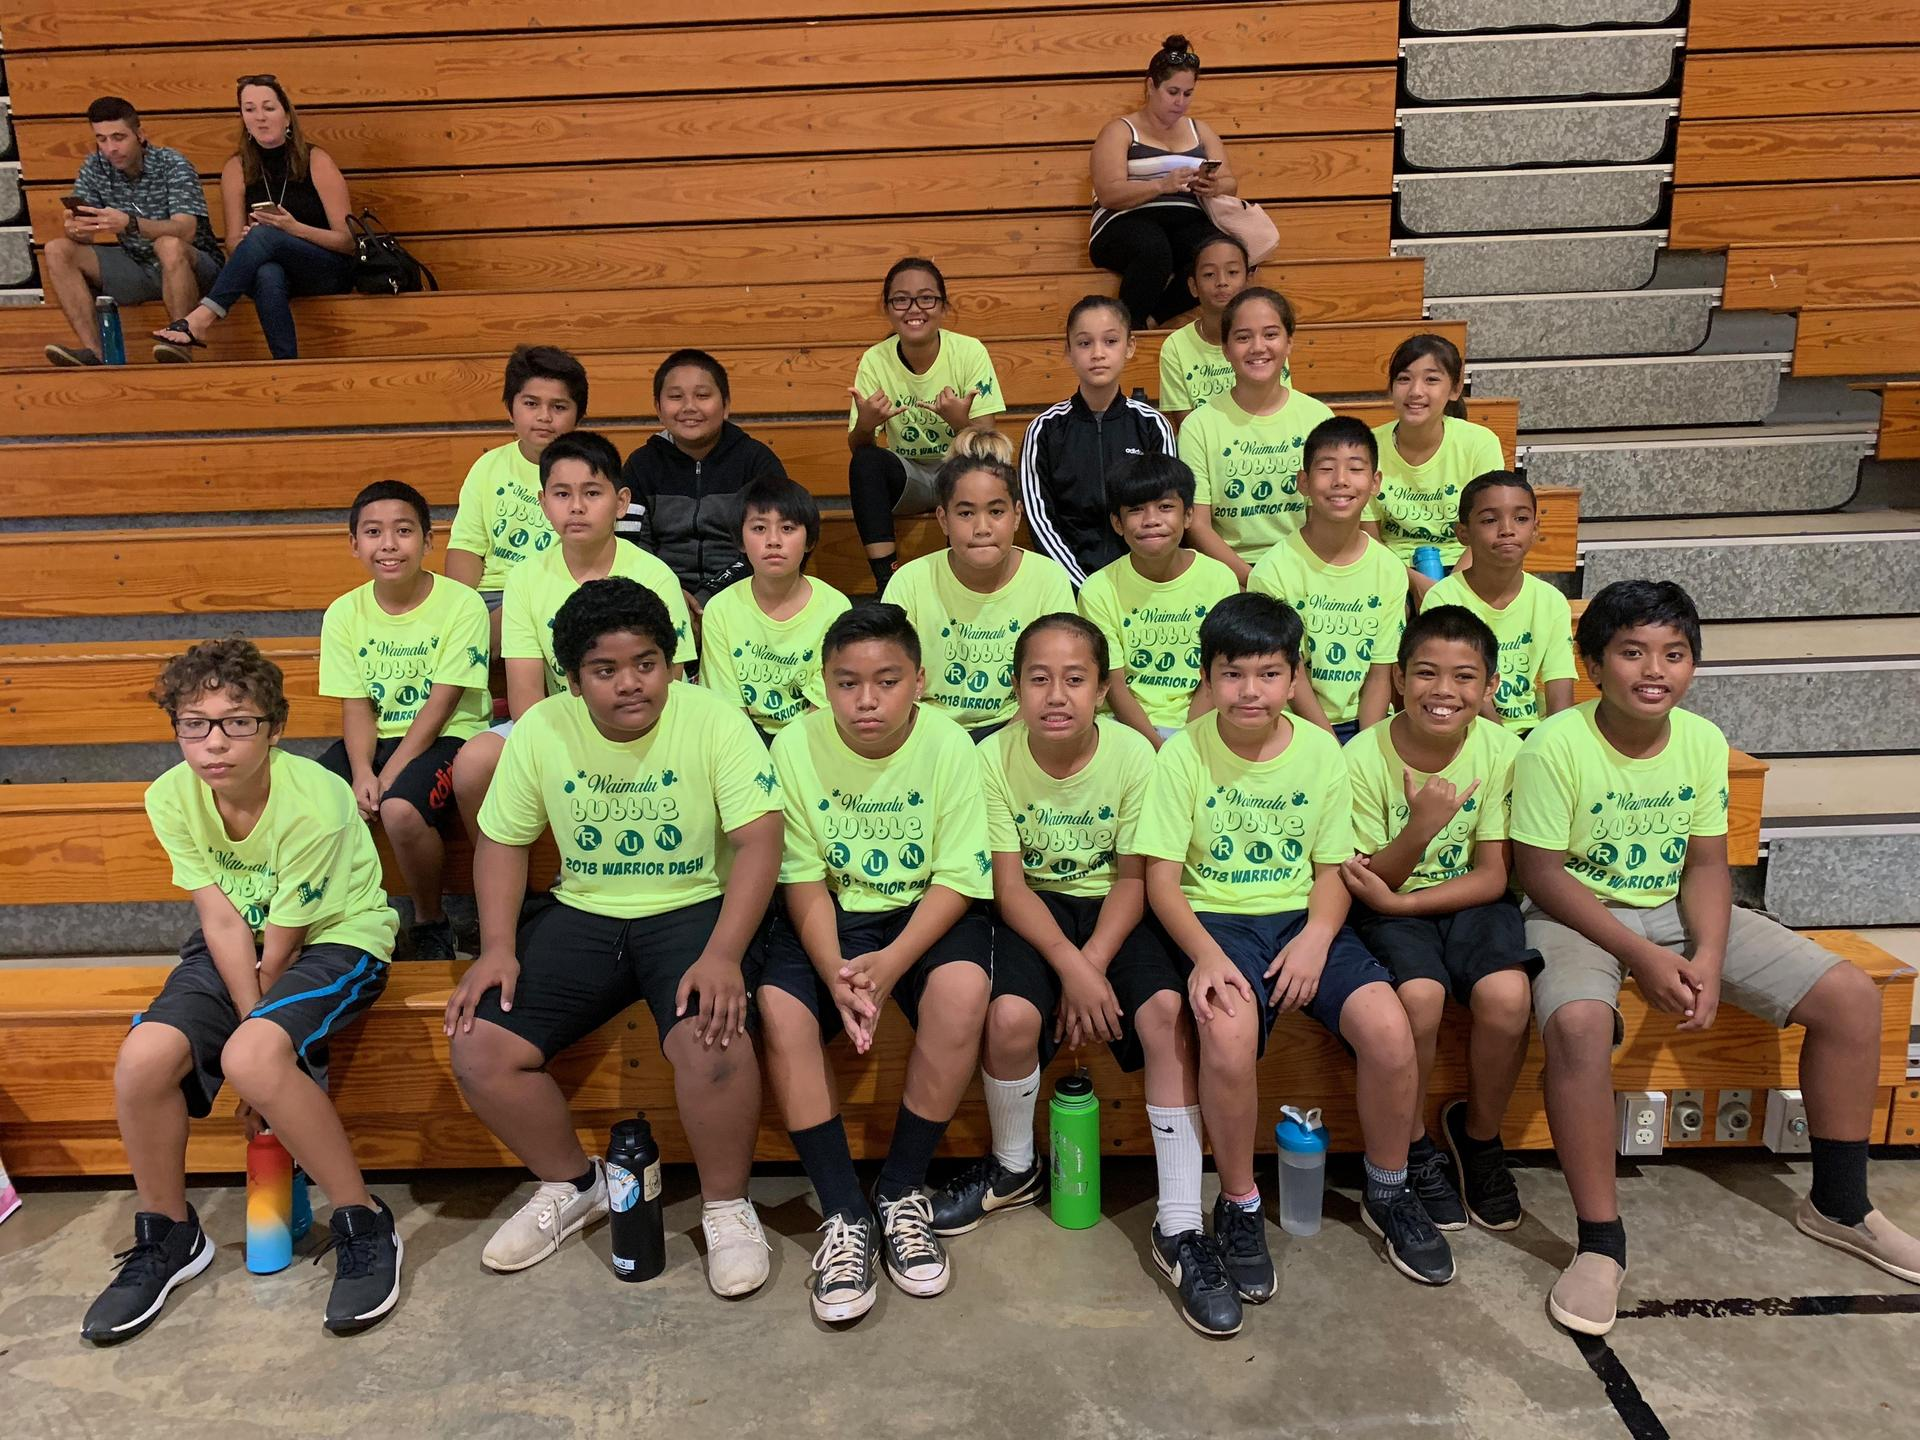 Photo of the volleyball team, school year 2019-20.